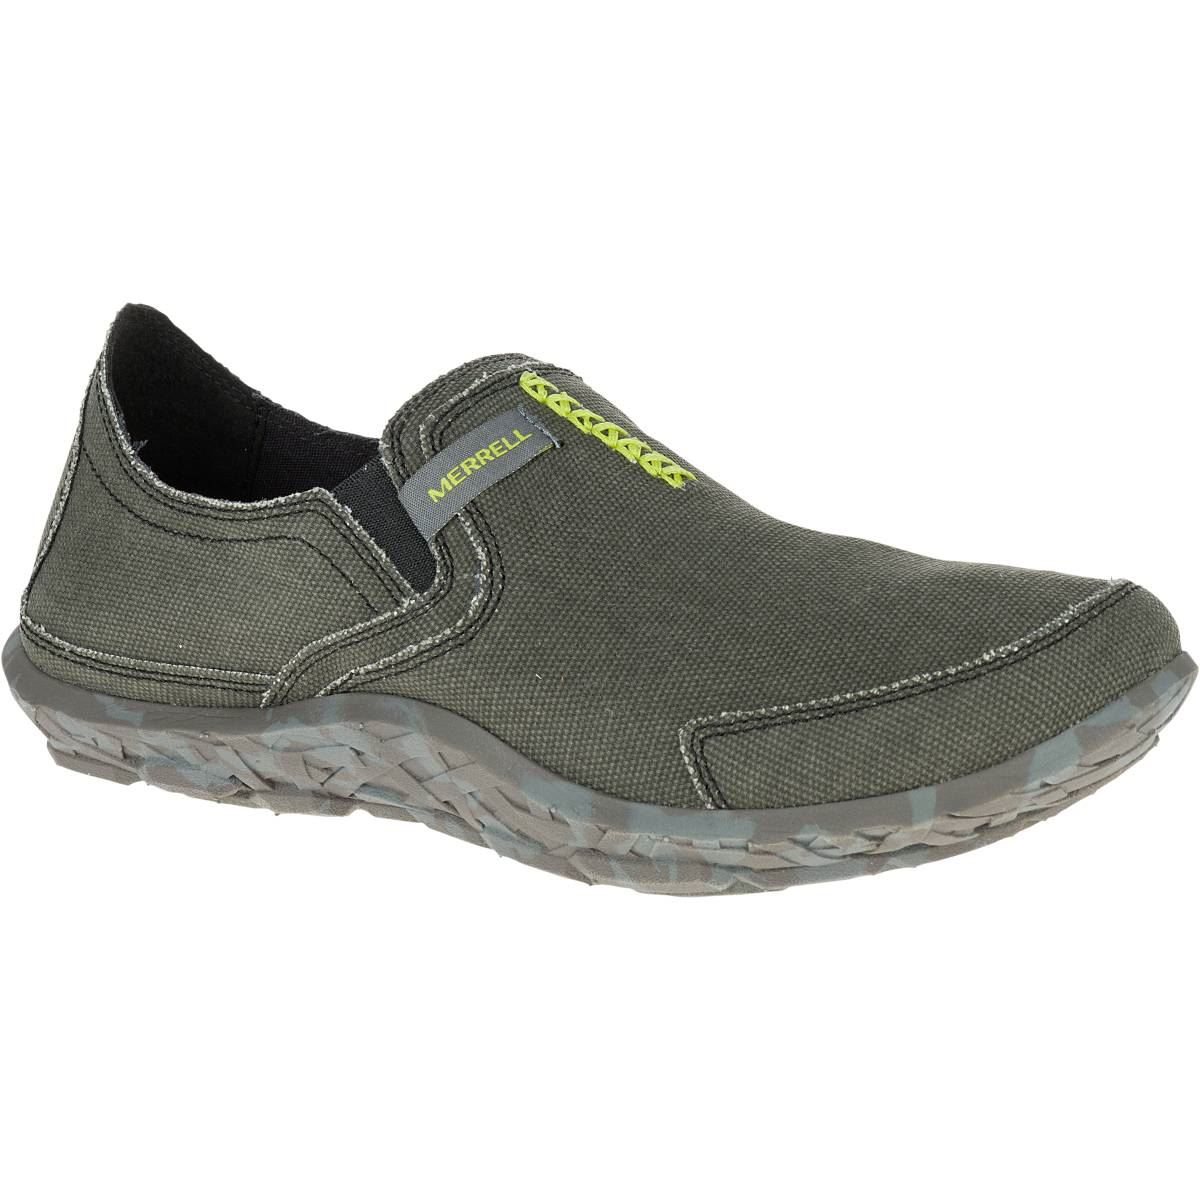 Buy Merrell Men's Moab 2 Vent Hiking Shoe and other Shoes at starke.ga Our wide selection is eligible for free shipping and free returns.